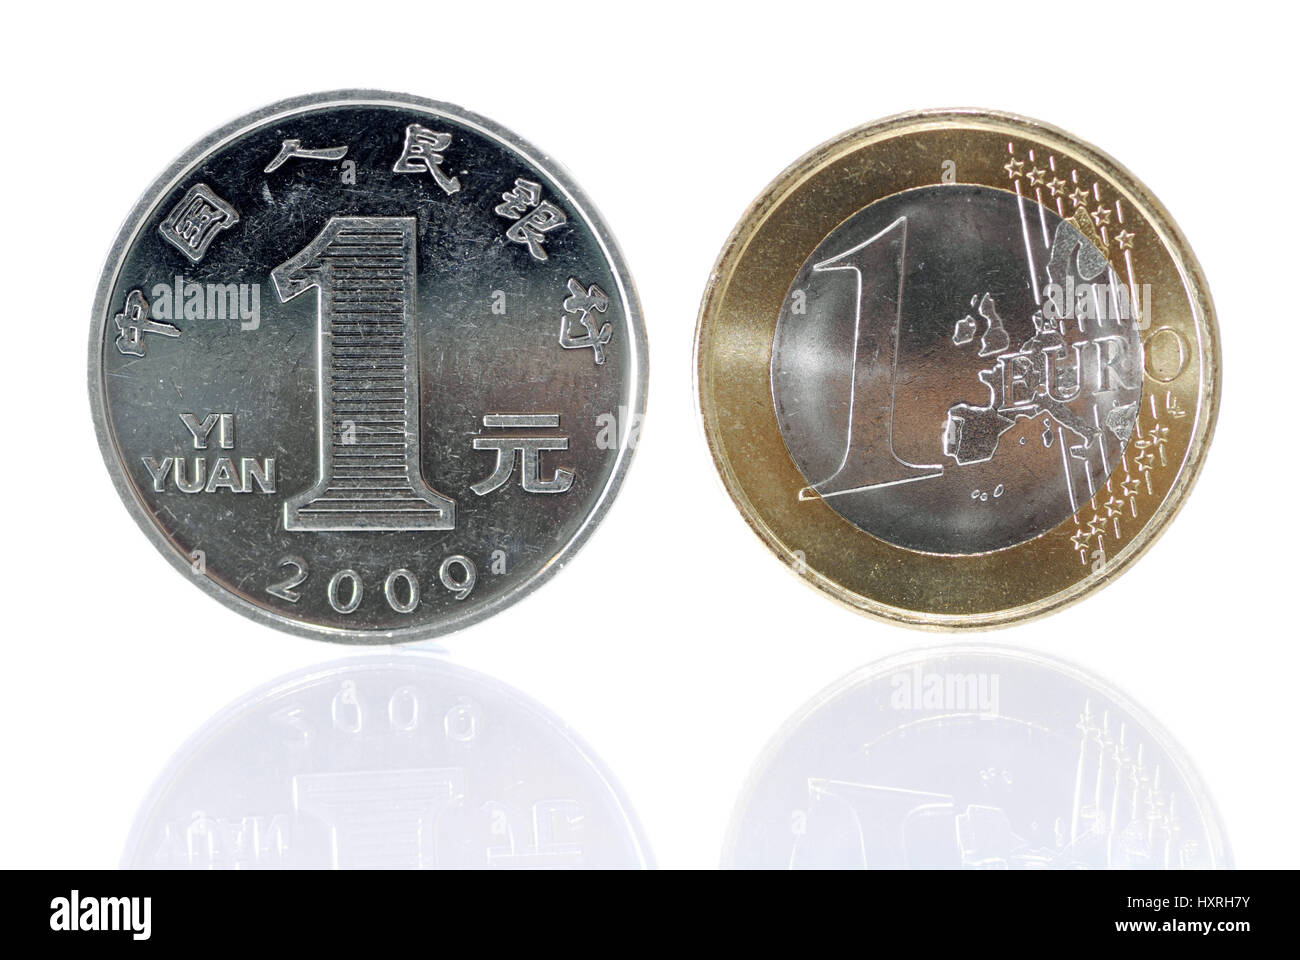 One-yuan coin (Chinese currency) and euro-coin one, economic development in China and Europe, Ein-Yuan-Münze - Stock Image